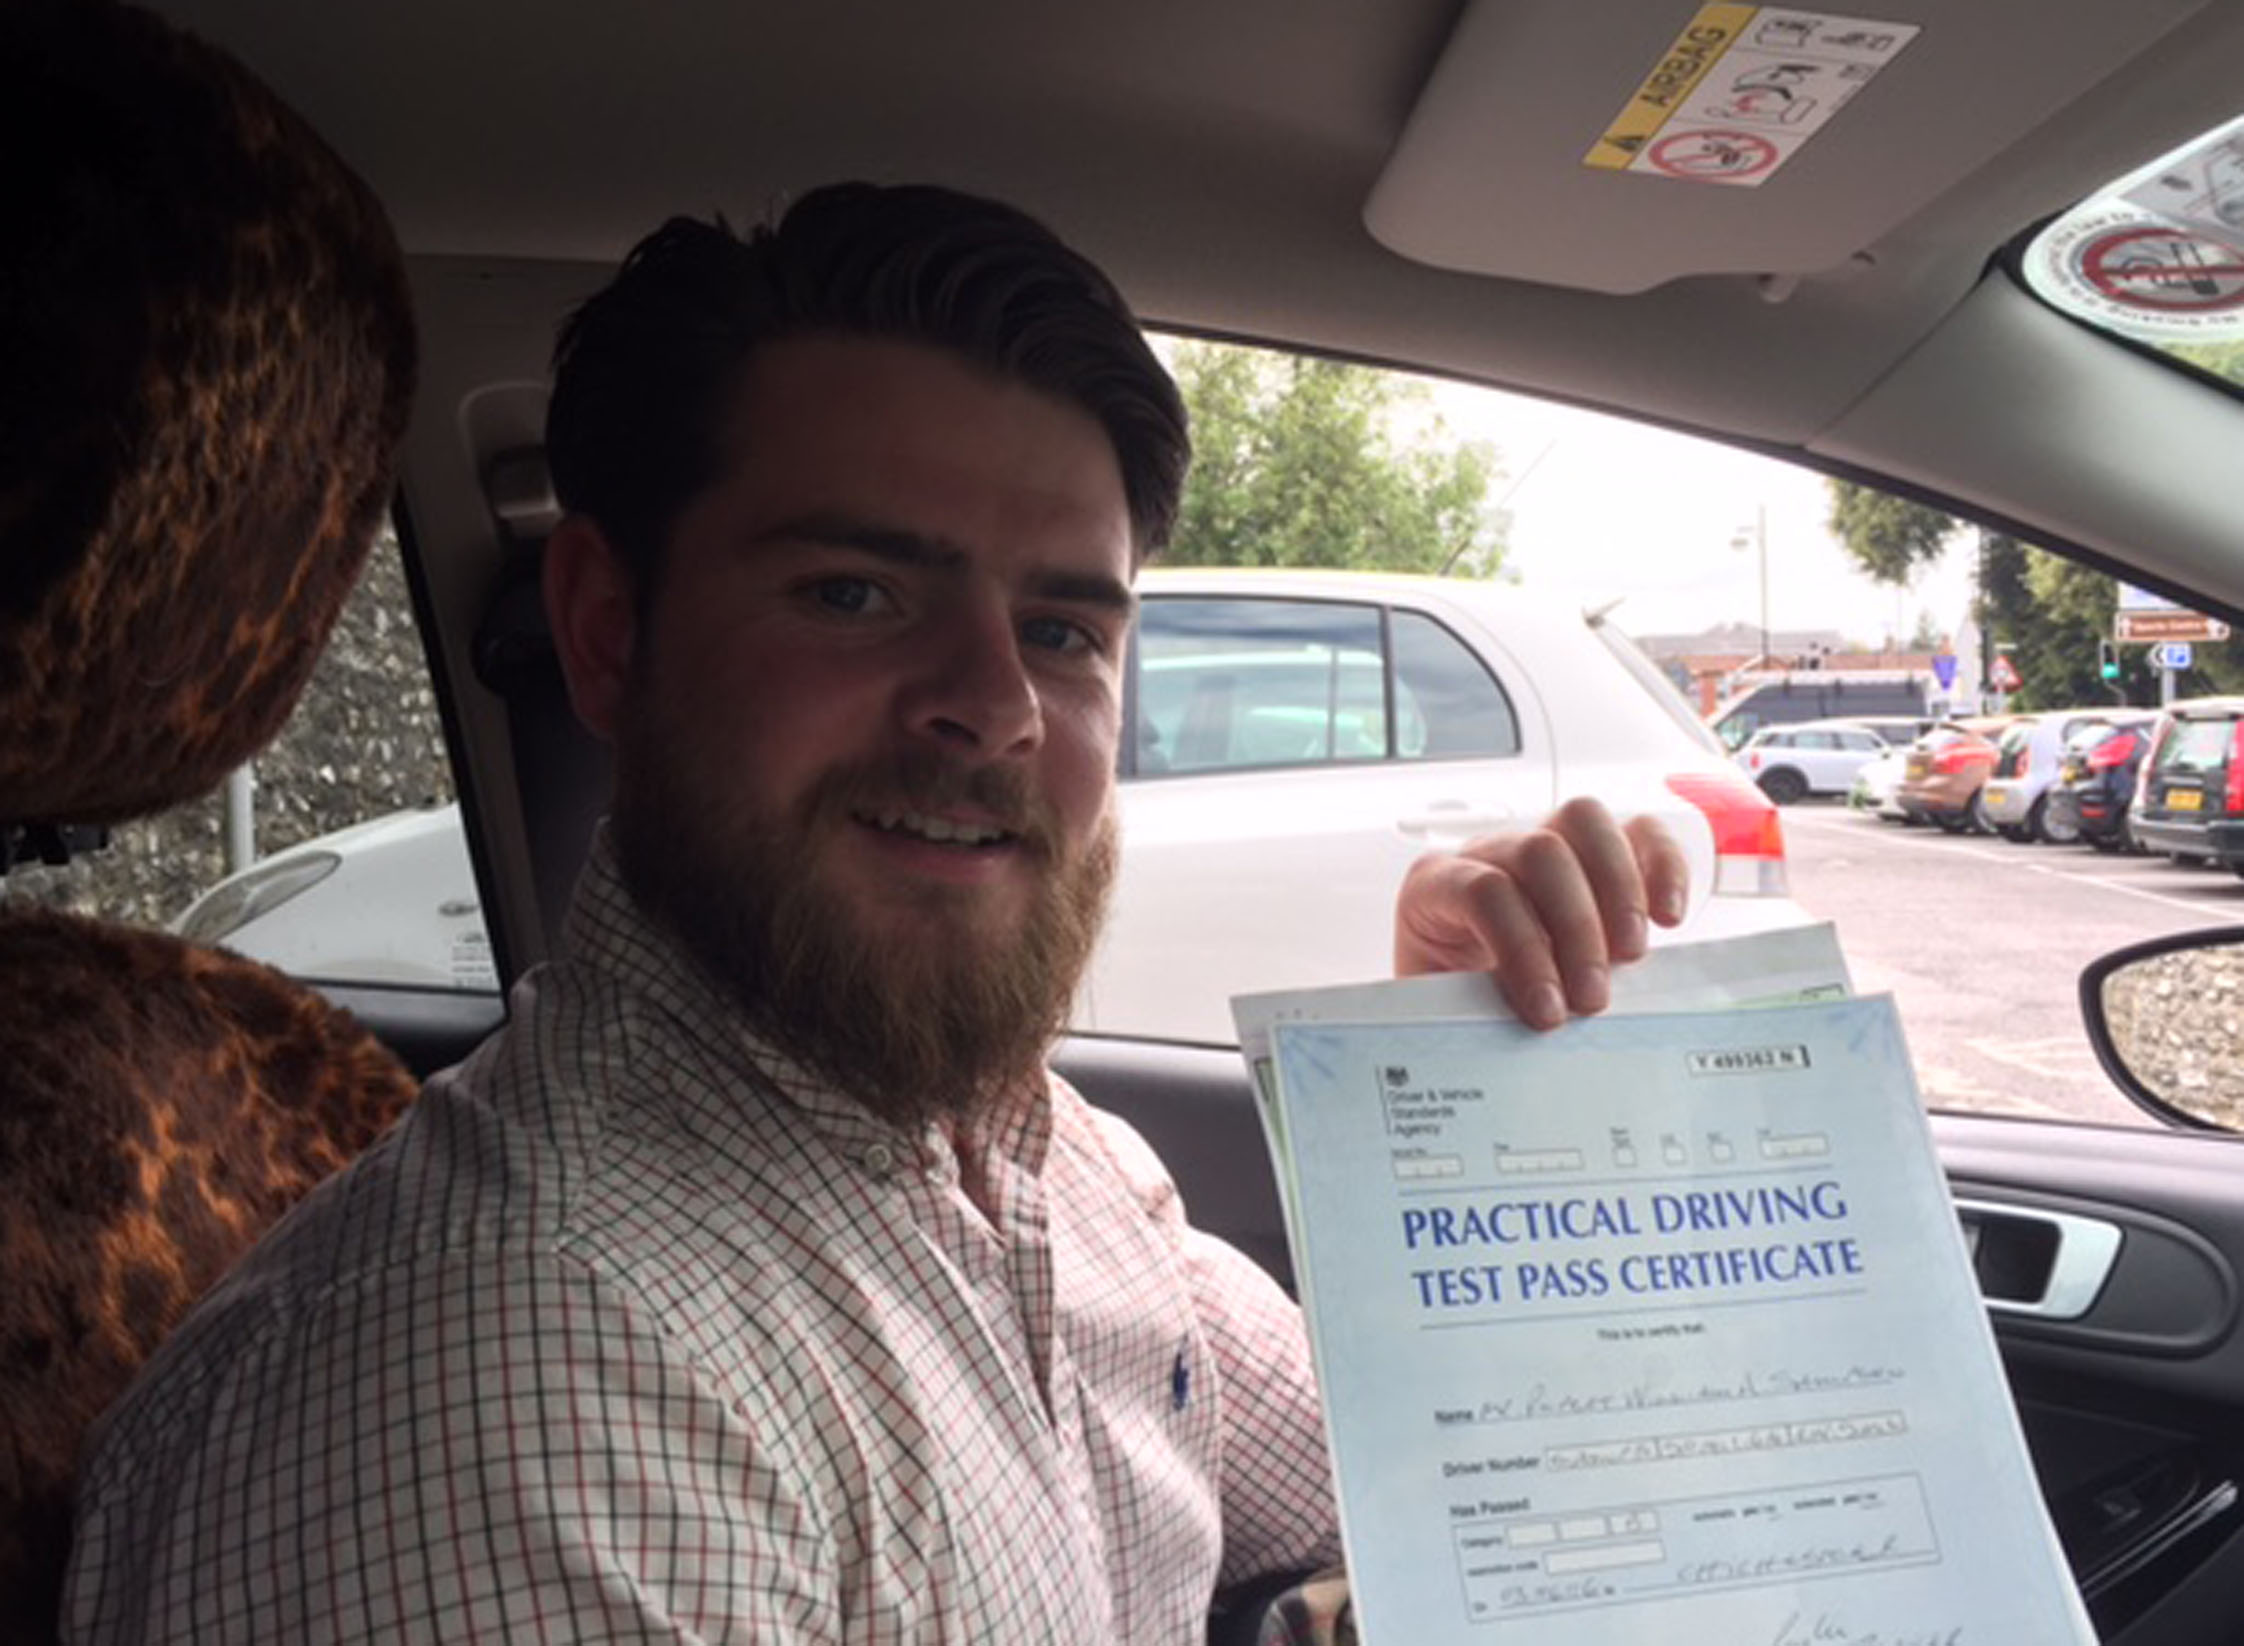 Another first time driving test pass with Purple Driving.